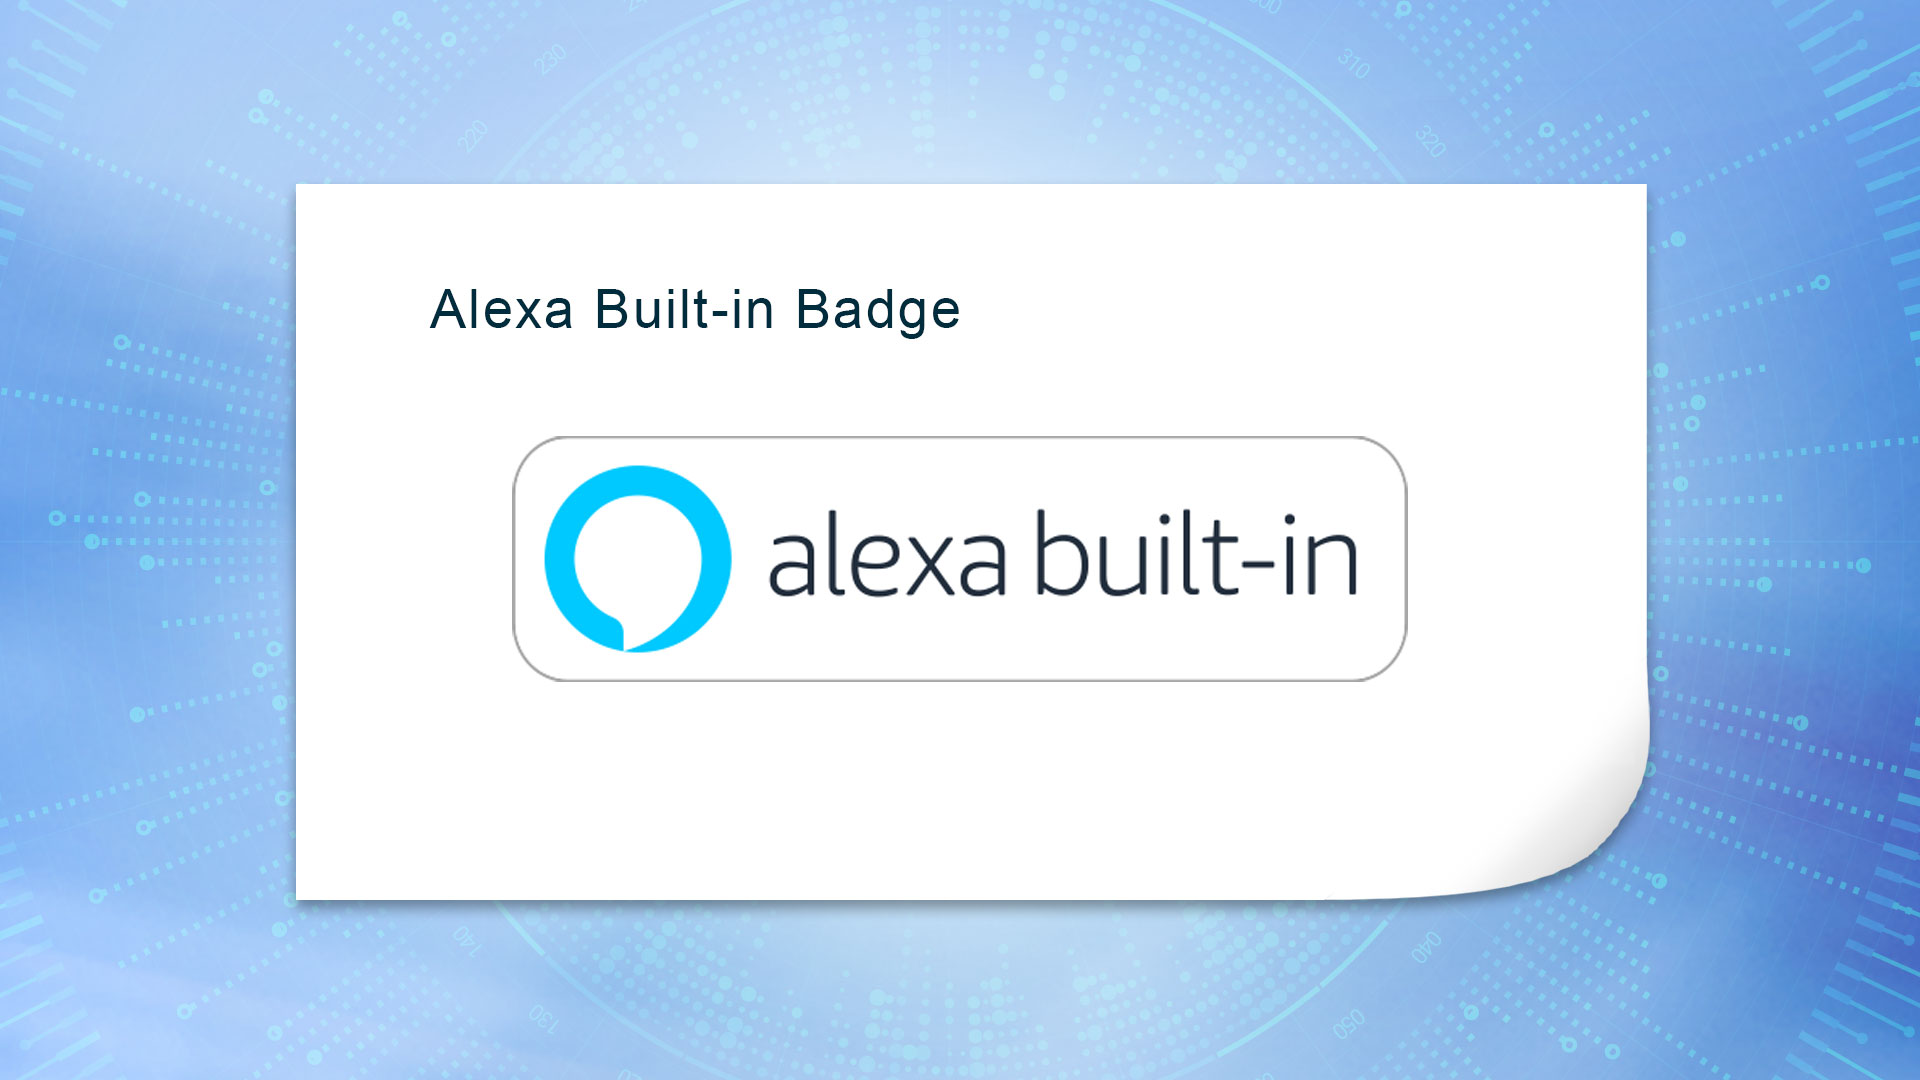 alexa build-in badge